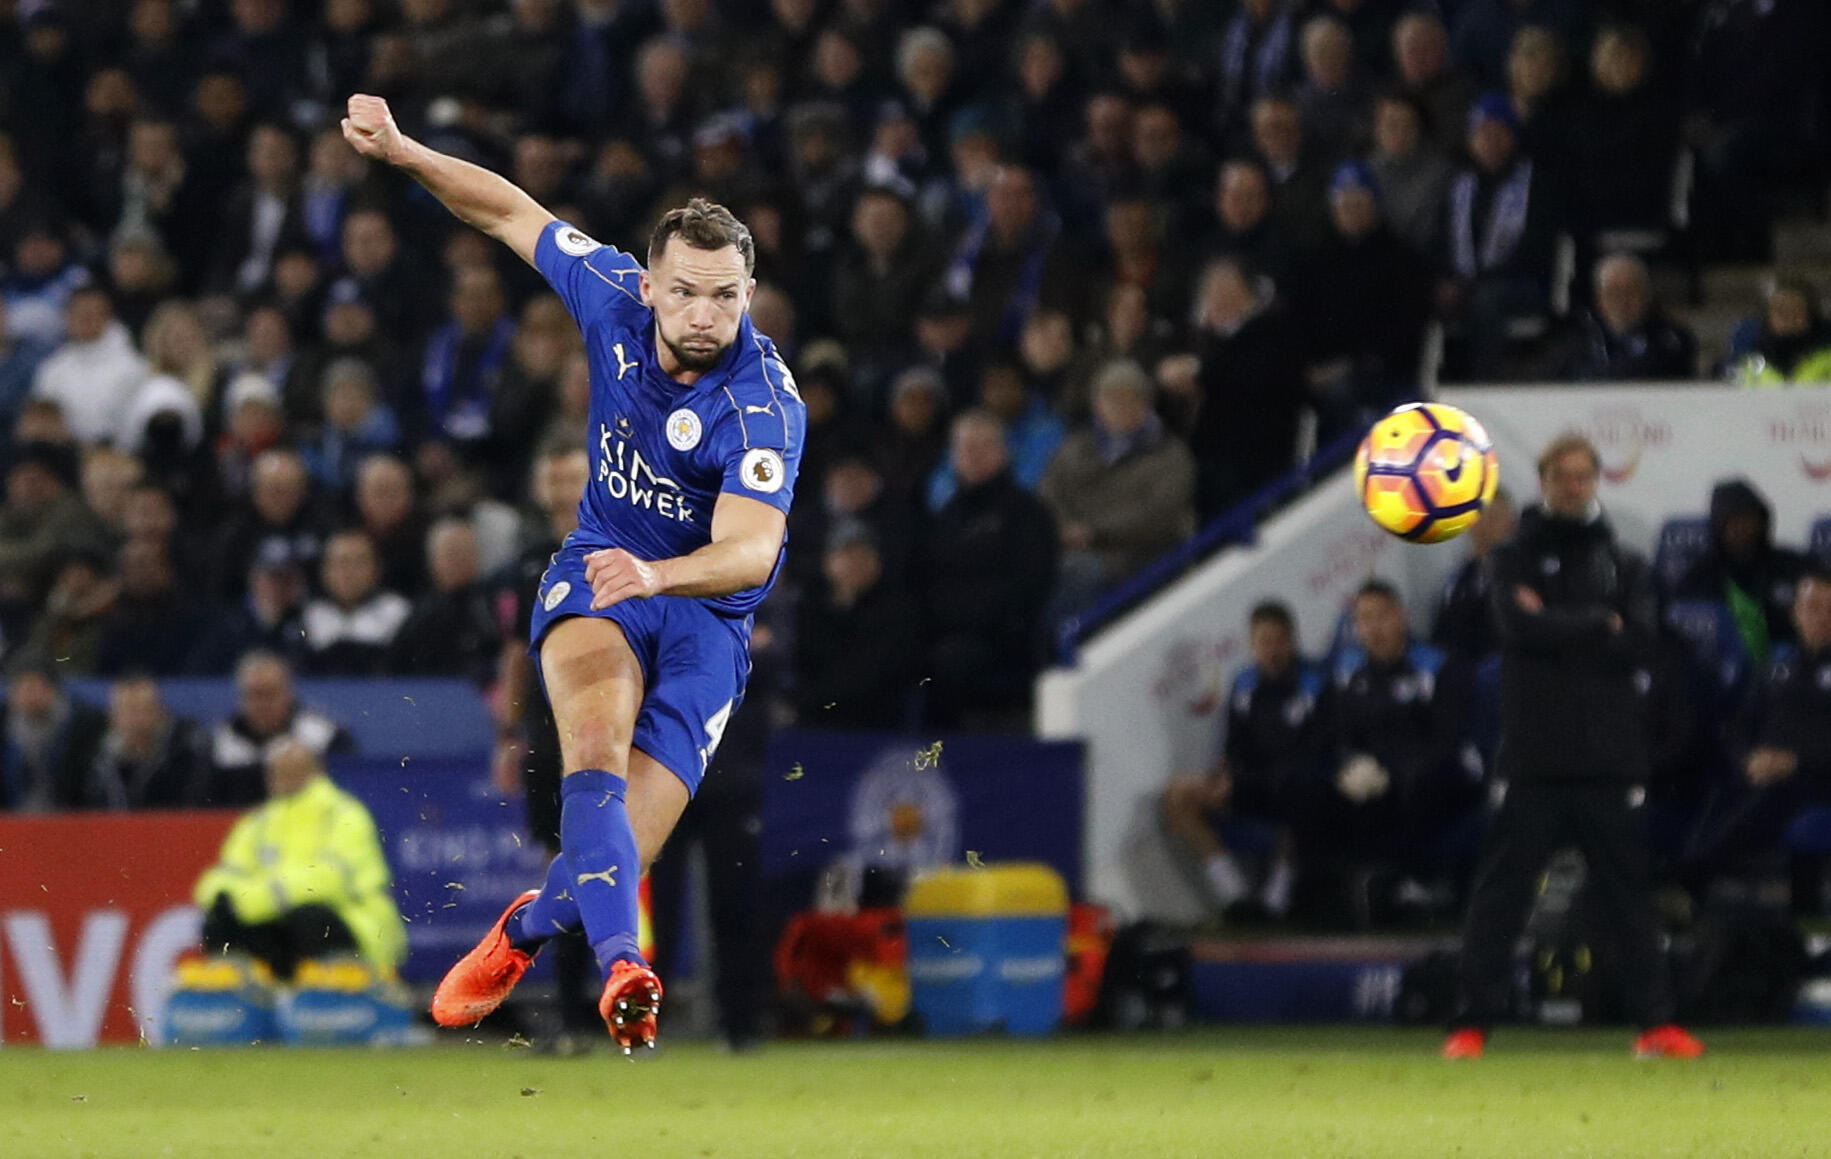 Leicester City's Danny Drinkwater scores their second goal against Liverpool.